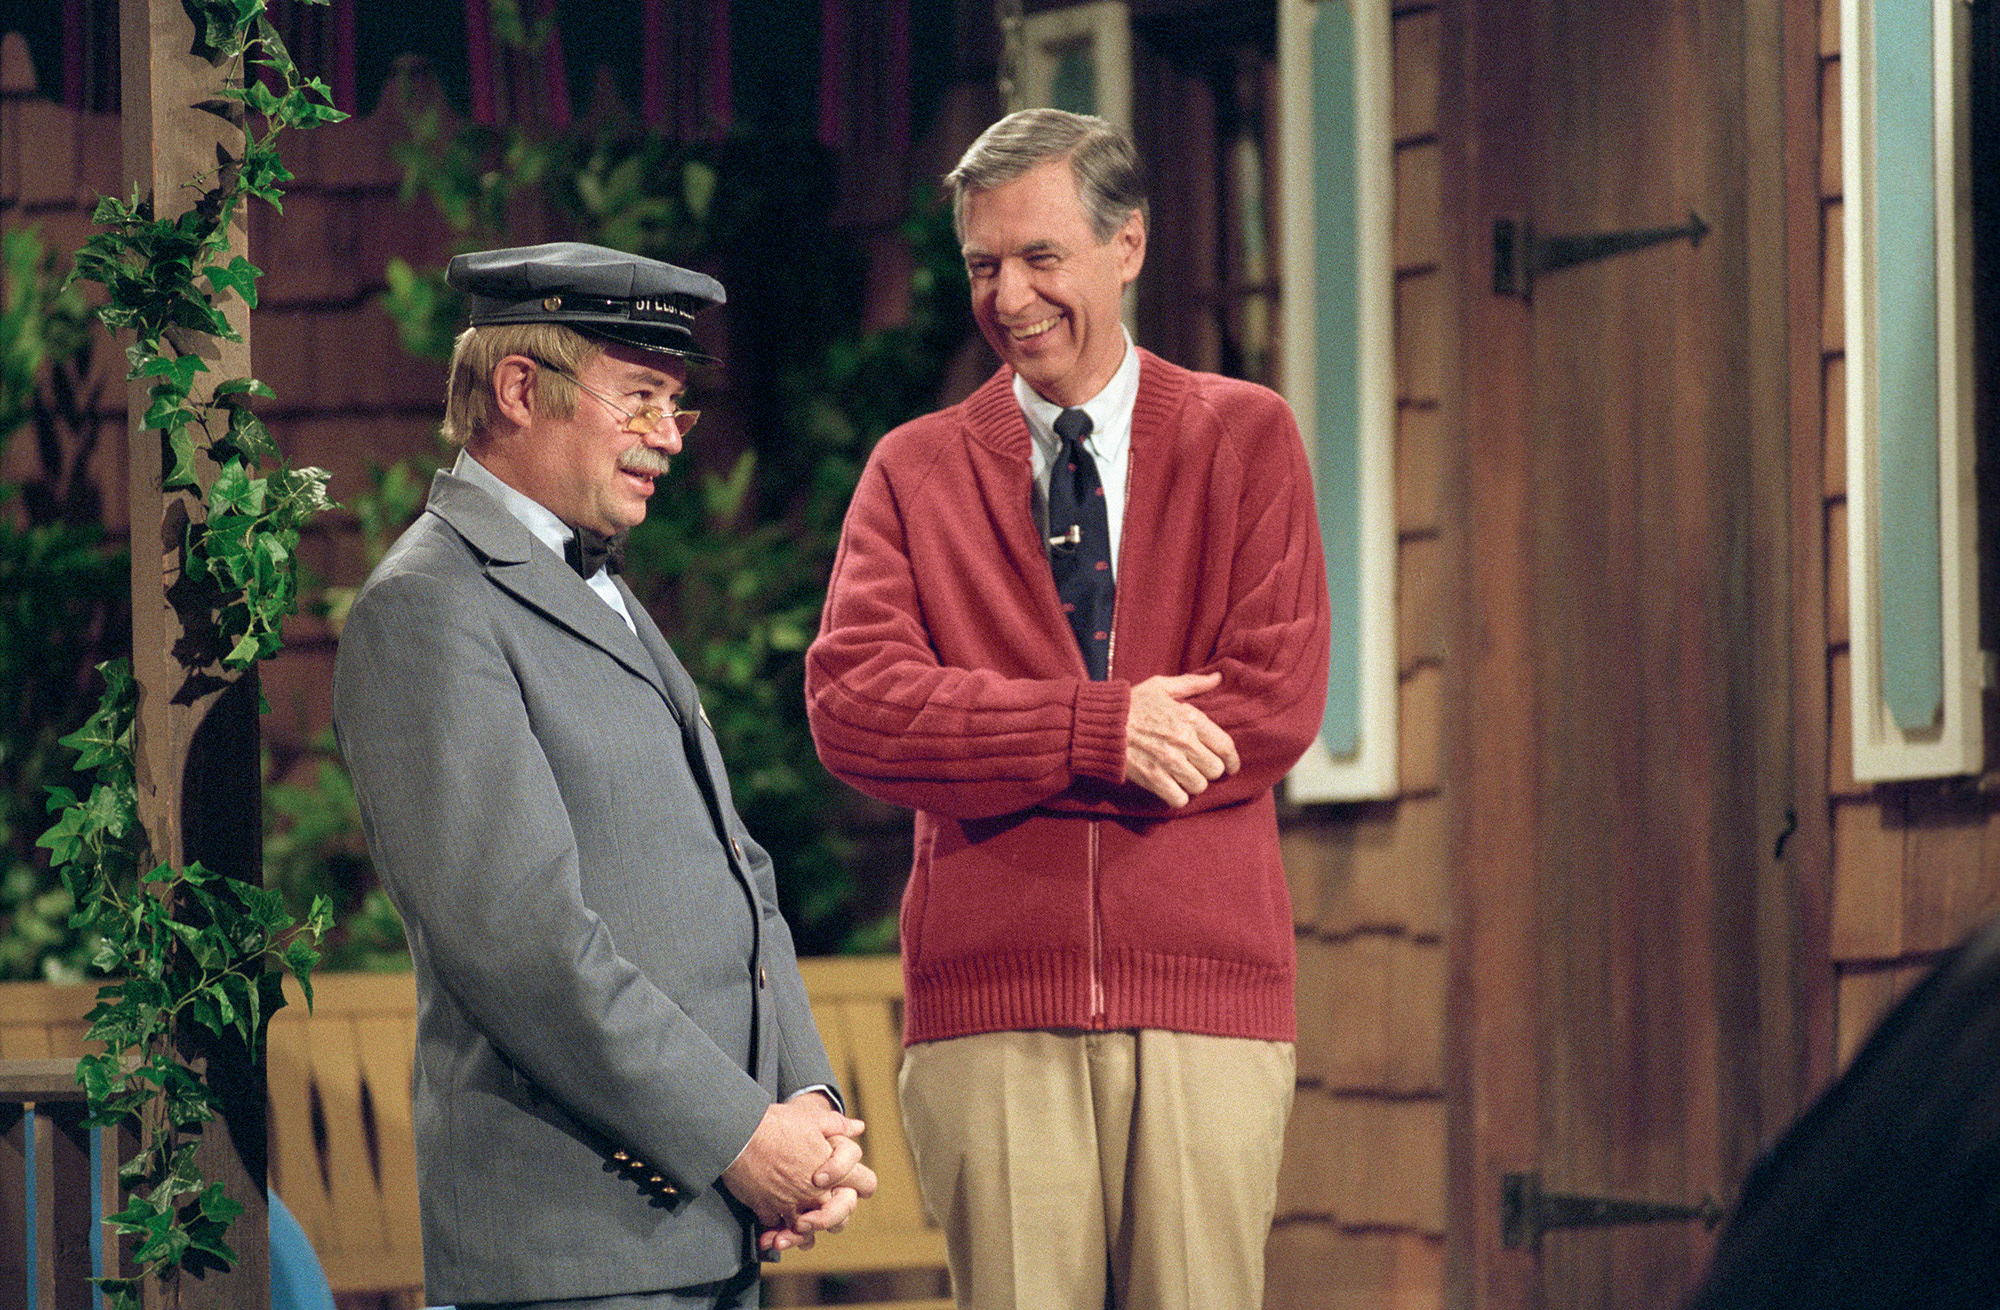 In Pennsylvania May 23 Will Be 143 Day In Tribute To Mr Rogers The State S Kindest Native Son